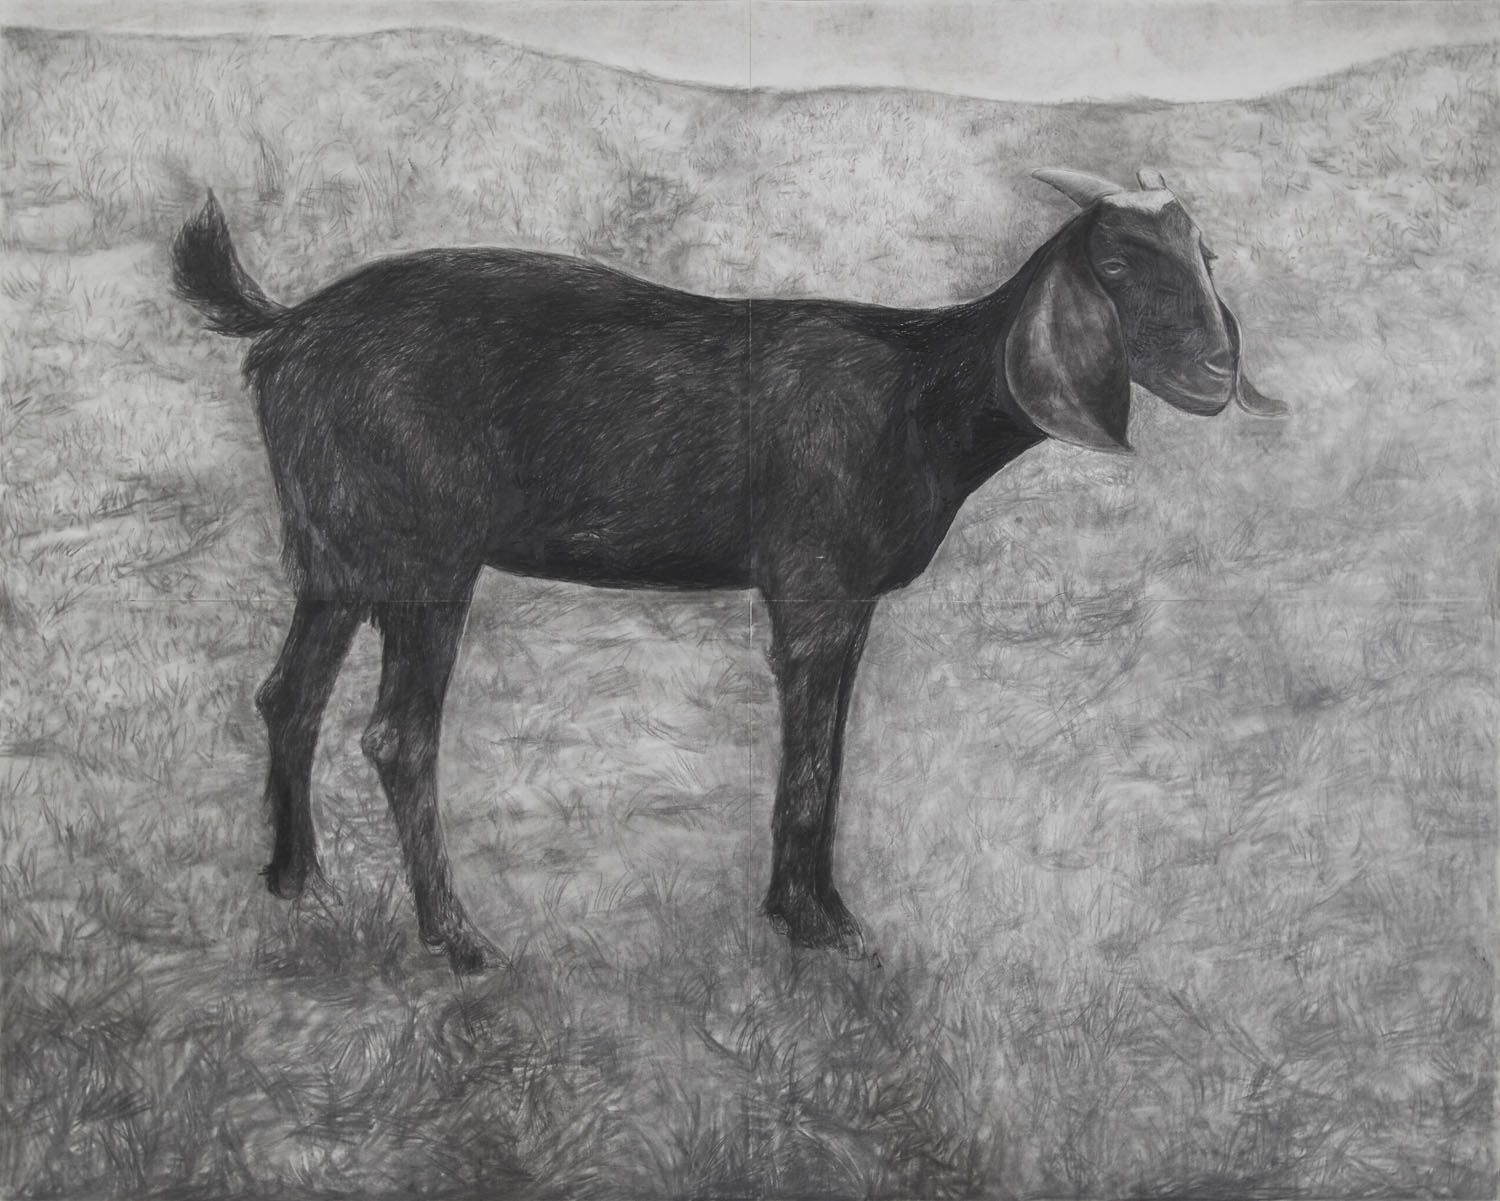 Black Goat in Landscape